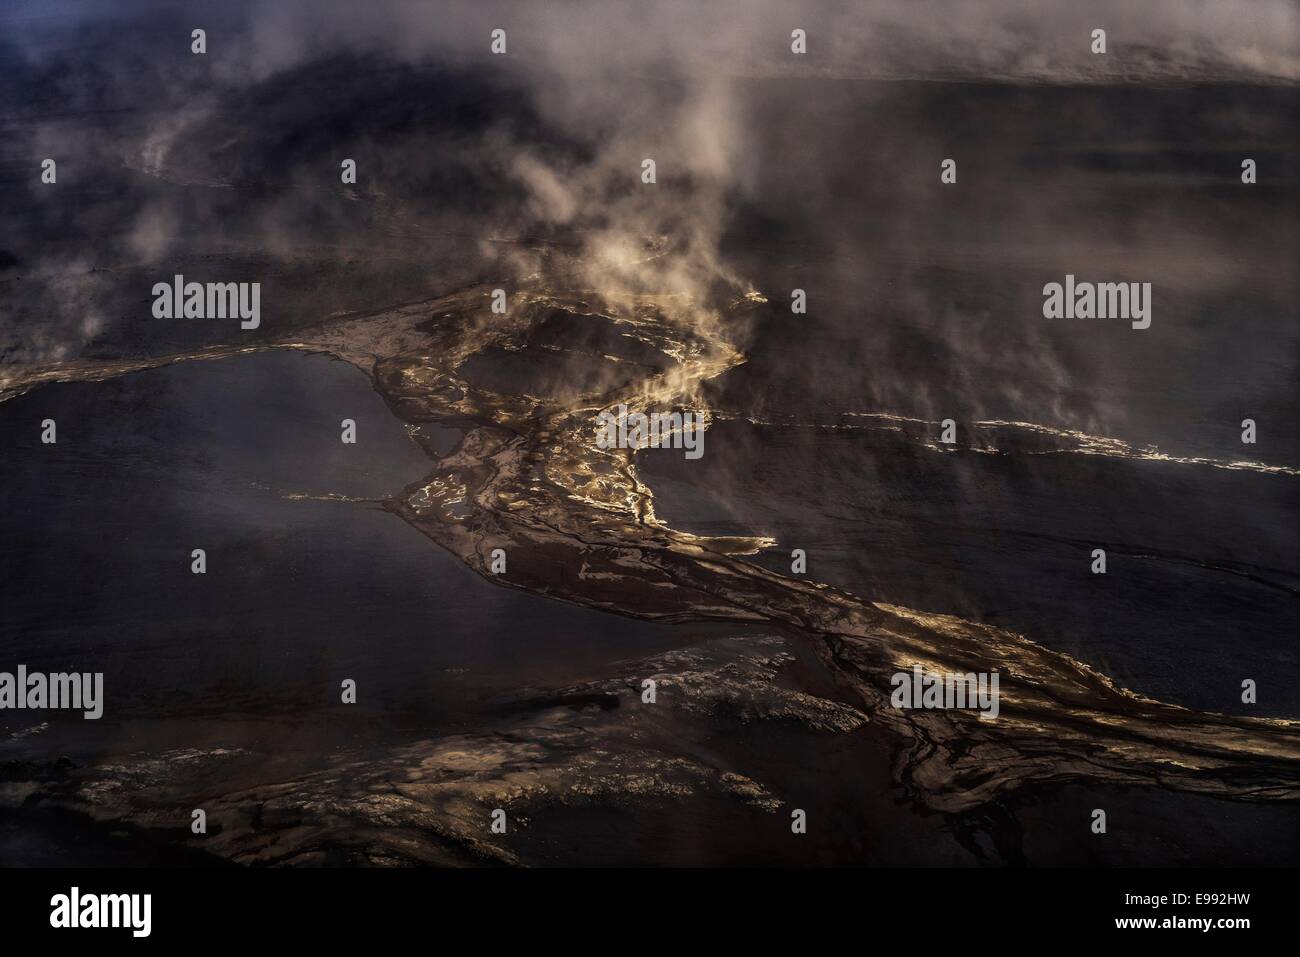 Dust storm in the highlands close to the Holuhraun Fissure Eruption, Bardarbunga Volcano, Iceland - Stock Image